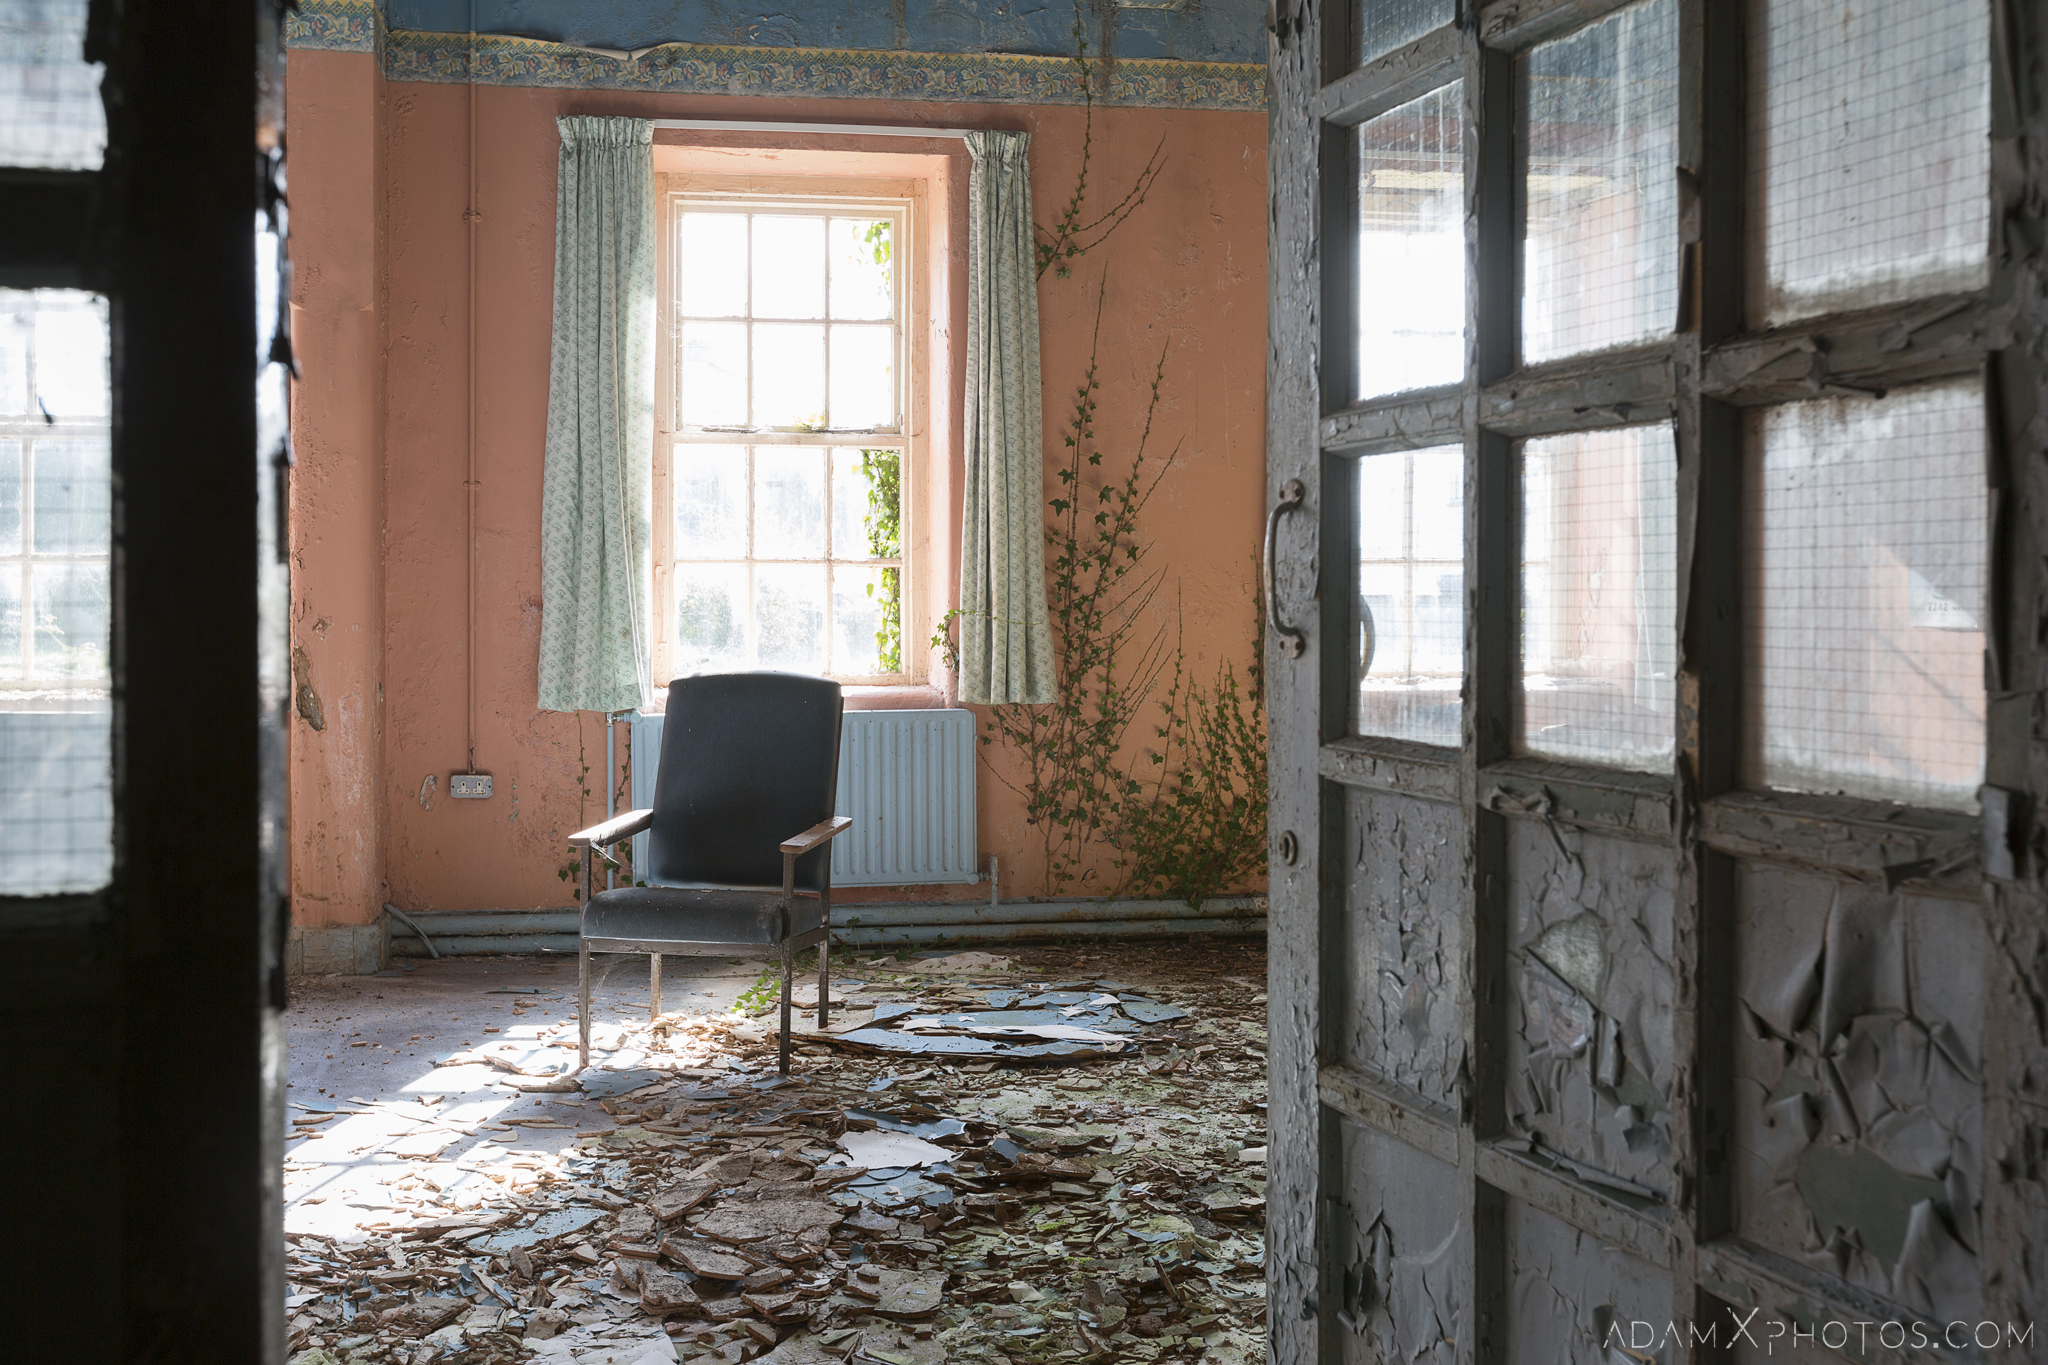 Waiting area Connacht District Lunatic Asylum St Brigid's Hospital Adam X Urbex Urban Exploration Ireland Ballinasloe Access 2017 Abandoned decay lost forgotten derelict location creepy haunting eerie